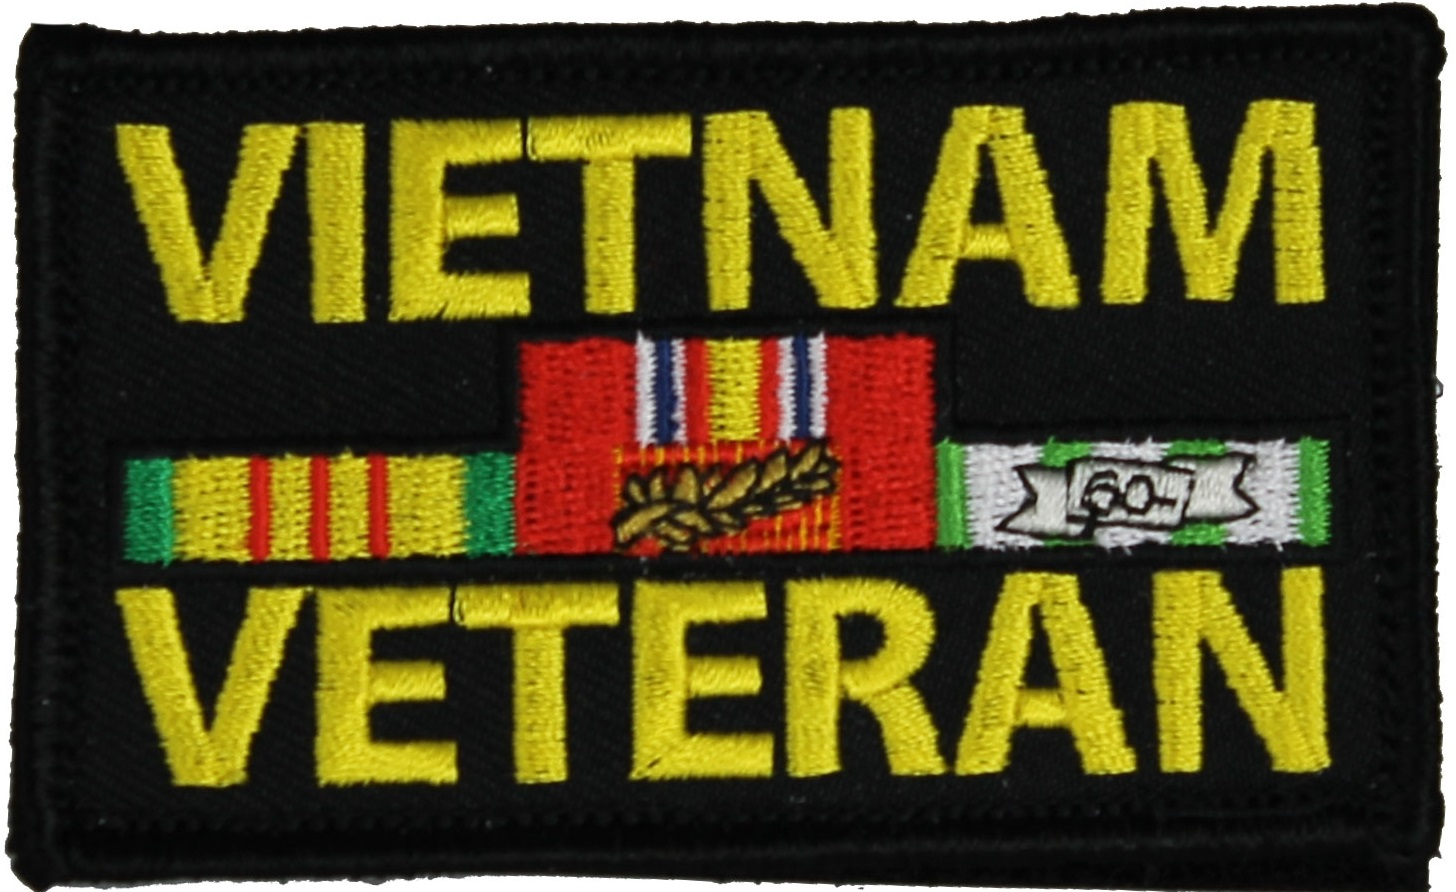 Black & Yellow Vintage Military Vietnam Veteran Patch 6 ... |Vietnam Veteran Patches And Badges